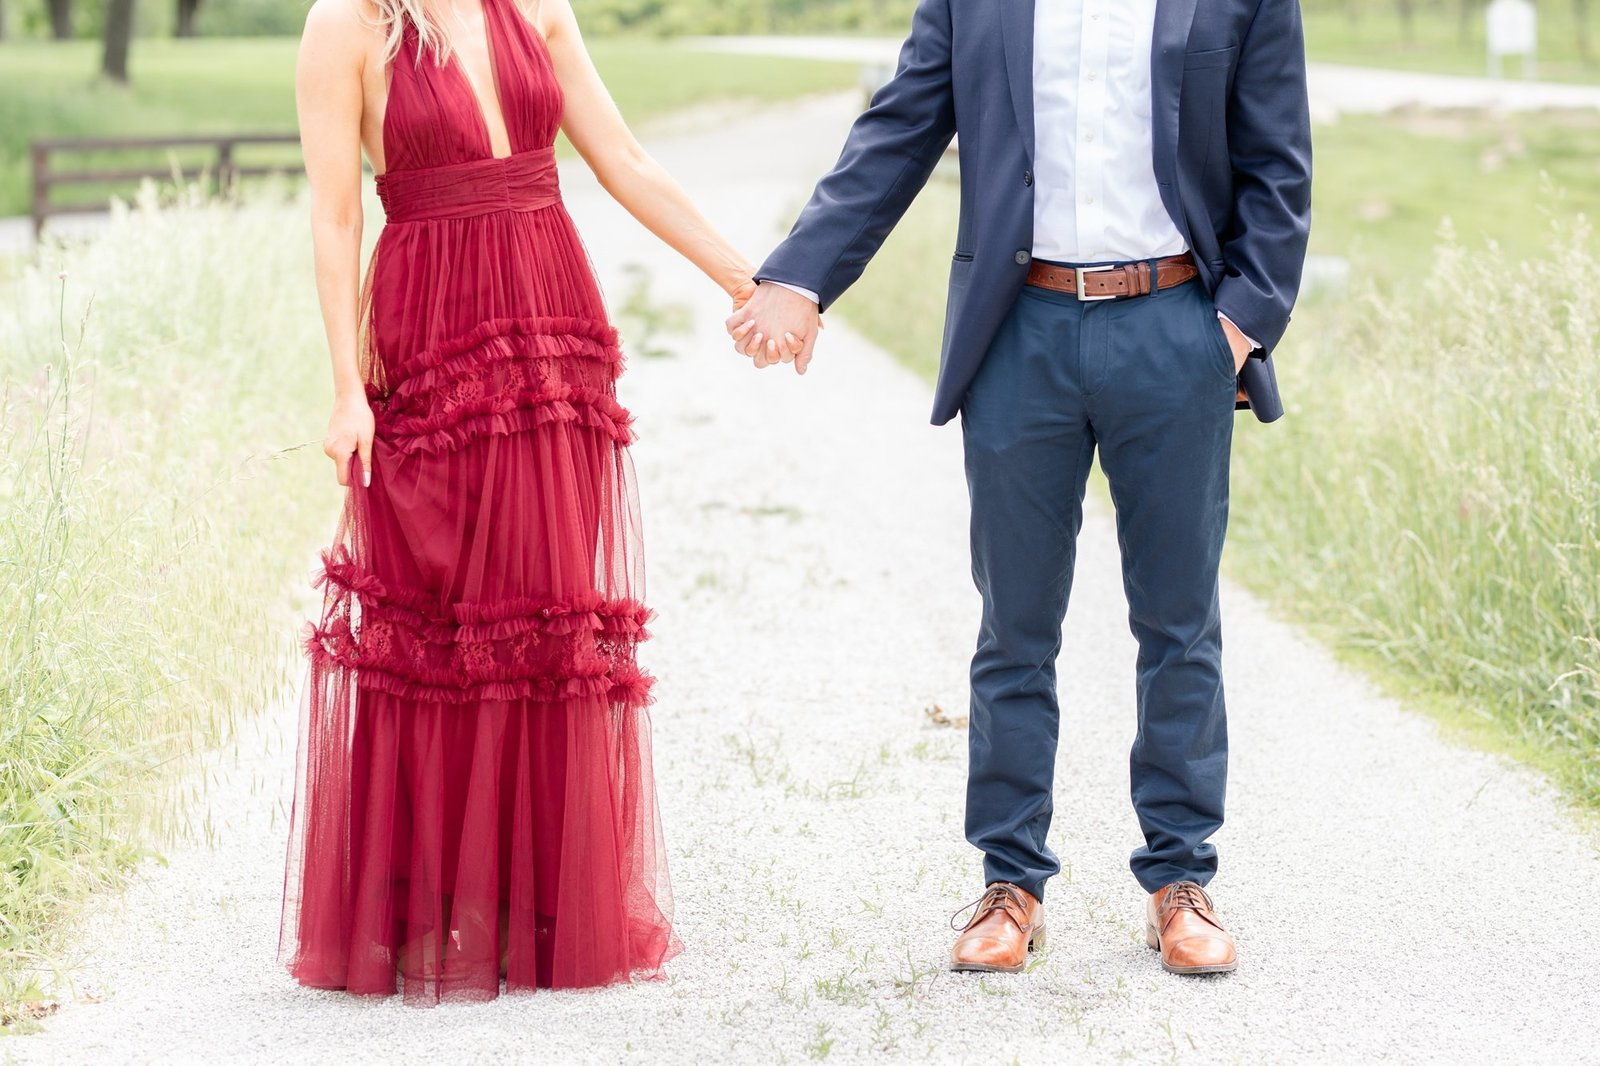 Emily Broadbent Photography St Louis Wedding Photographer_0091